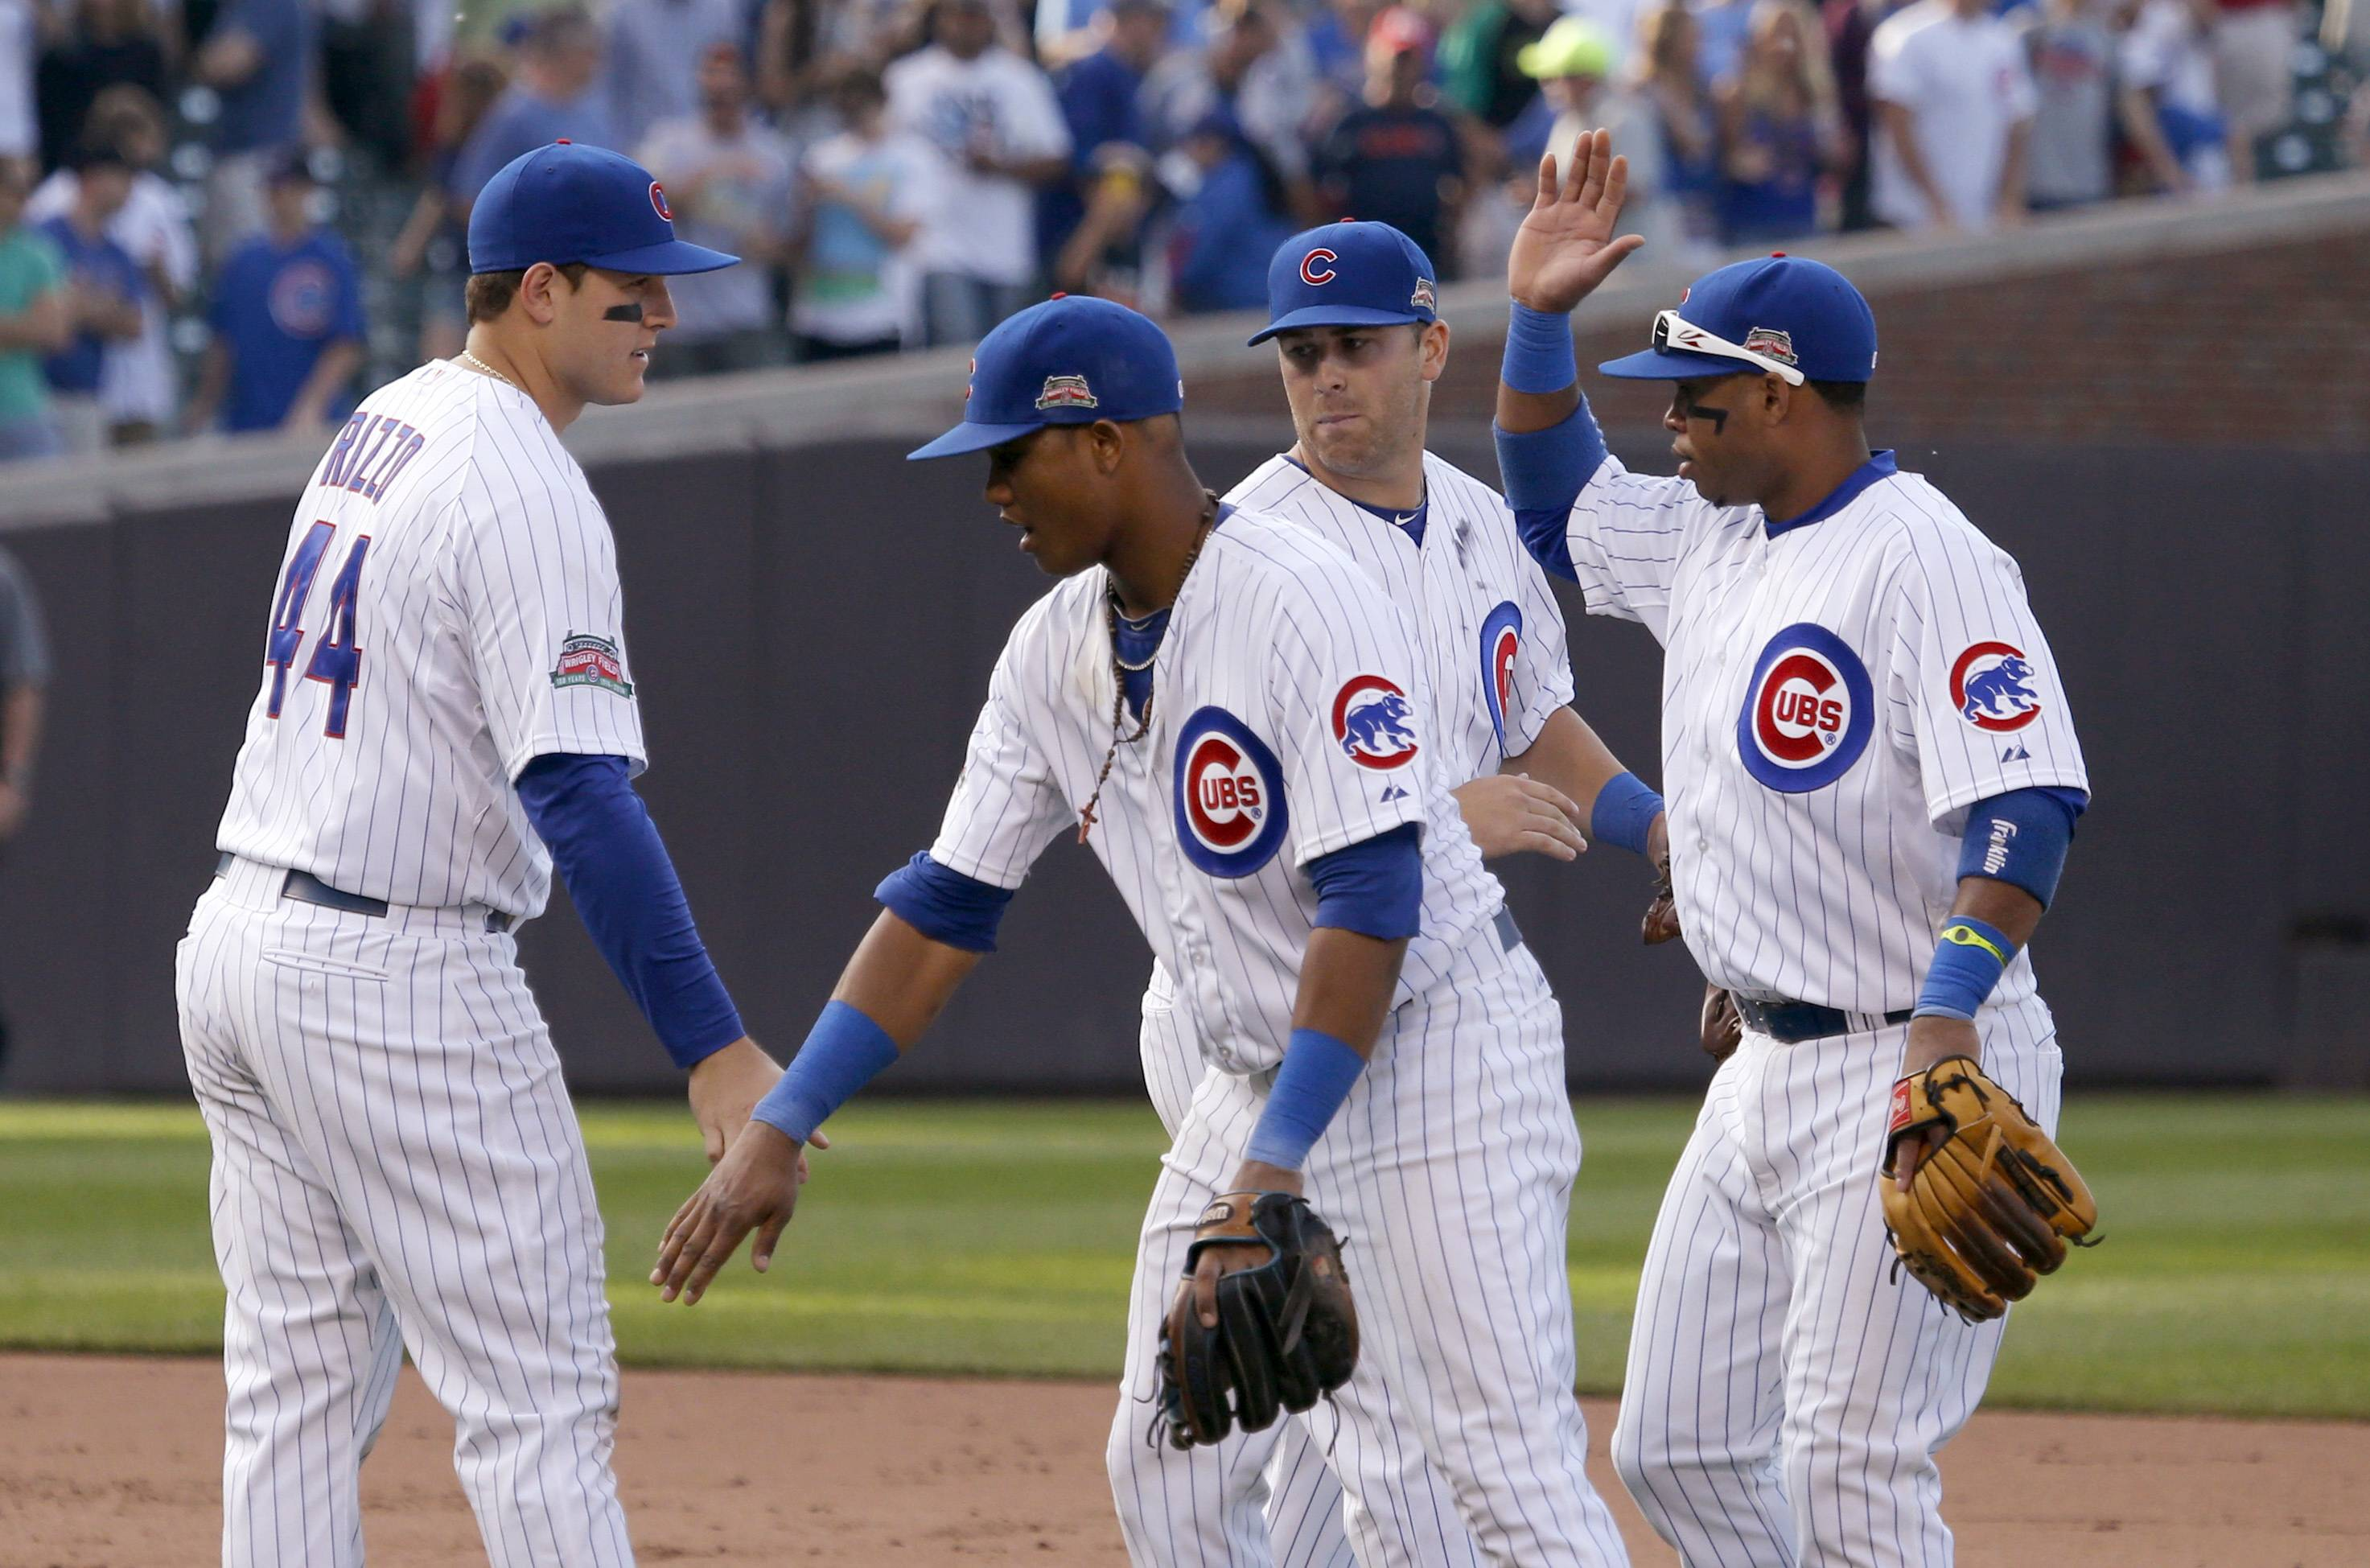 Chicago Cubs players, from left, Anthony Rizzo, Starlin Castro, Mike Olt and Luis Valbuena celebrate the team's 6-3 win over the Pittsburgh Pirates on Friday.